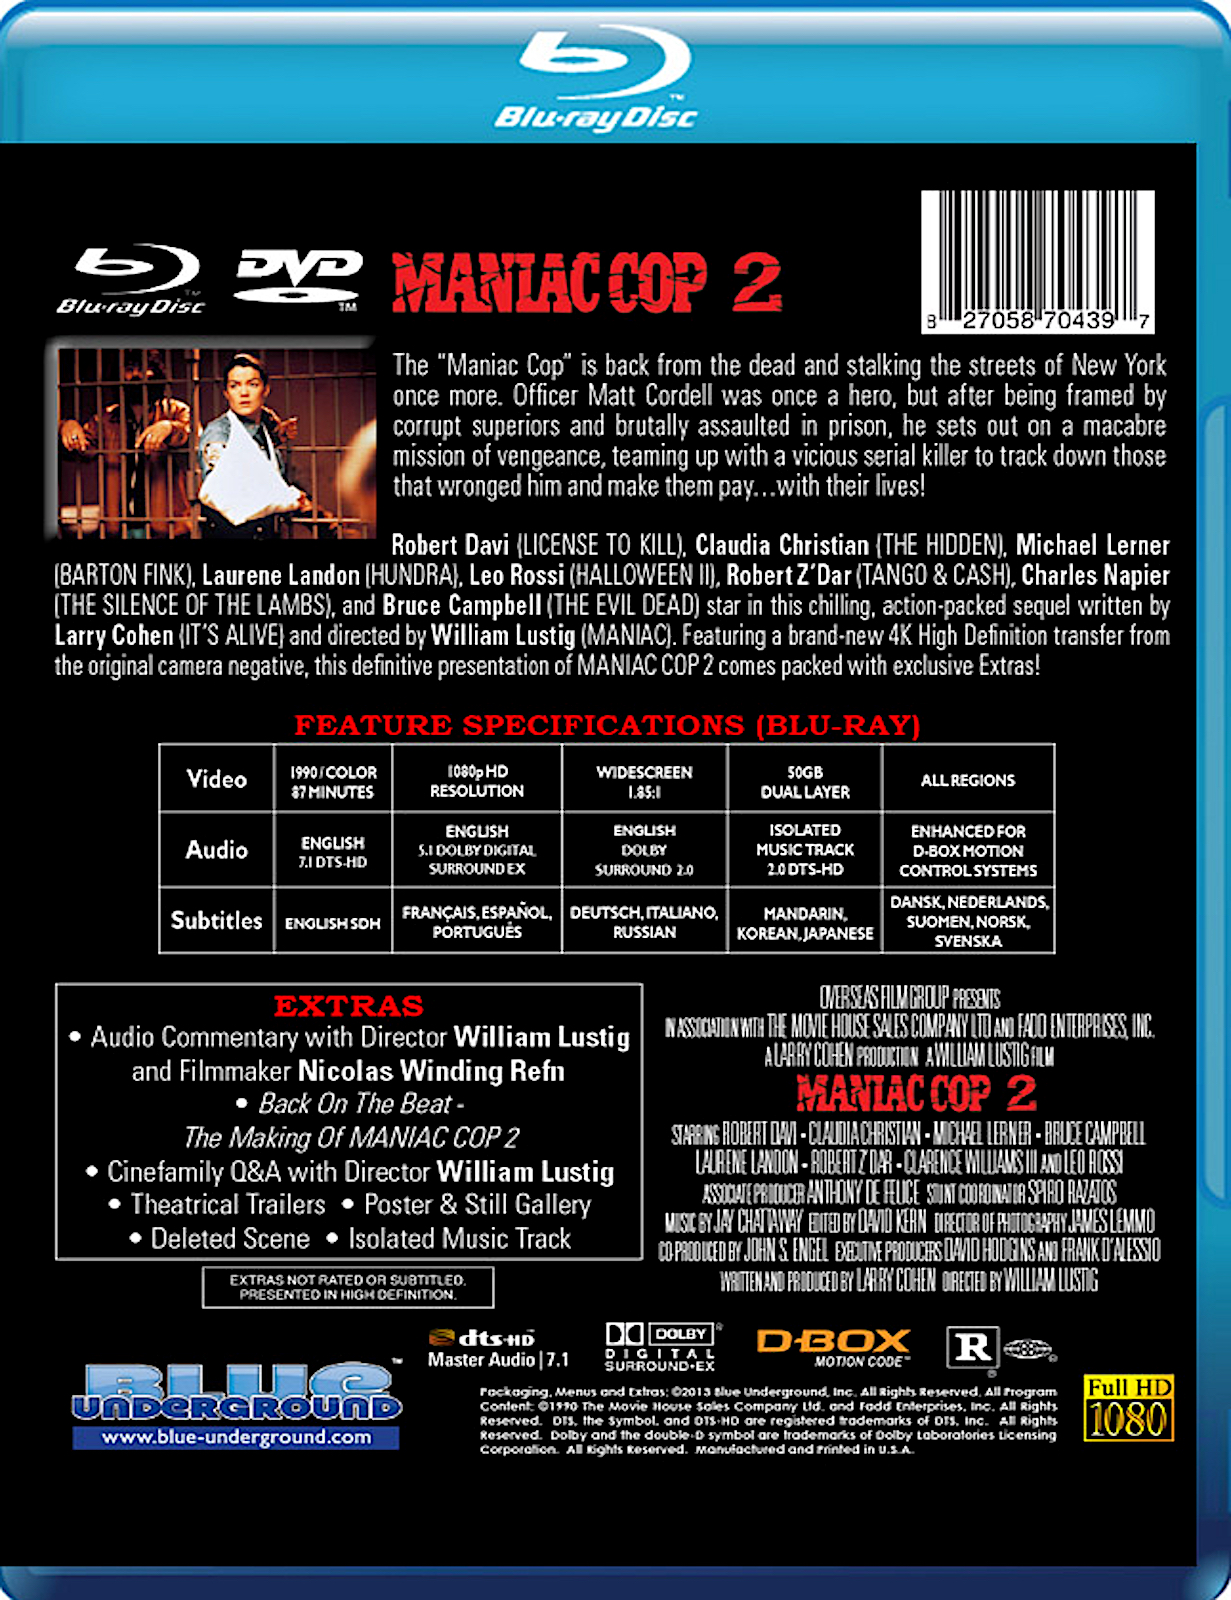 Blu-Ray And Dvd Covers Blue Underground Blu-Rays The -5898